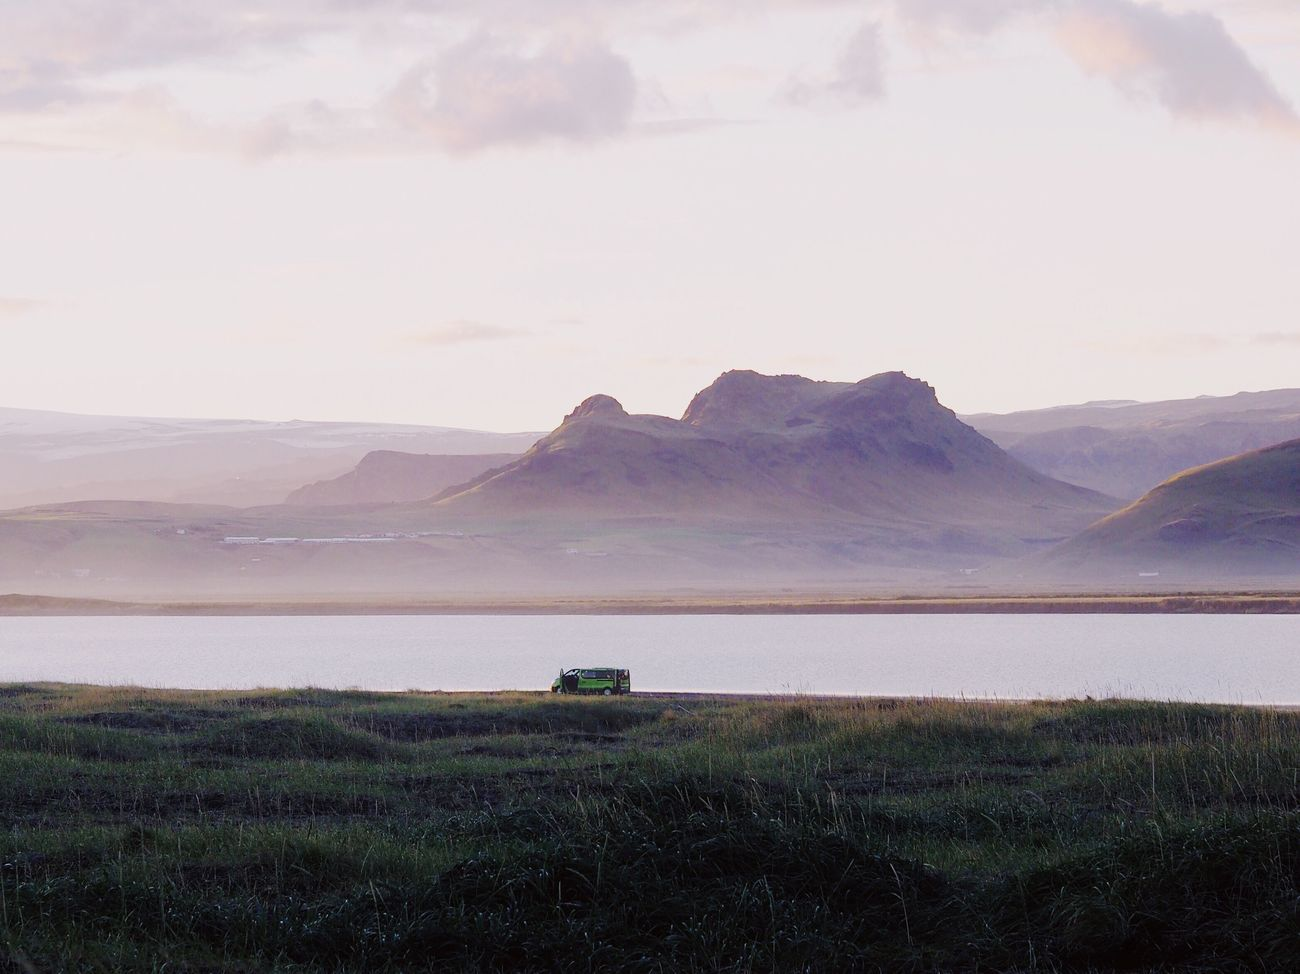 Landscape Scenics Nature Mountain Beauty In Nature Outdoors Tranquil Scene Day Van Car Traveling Home For The Holidays in Iceland